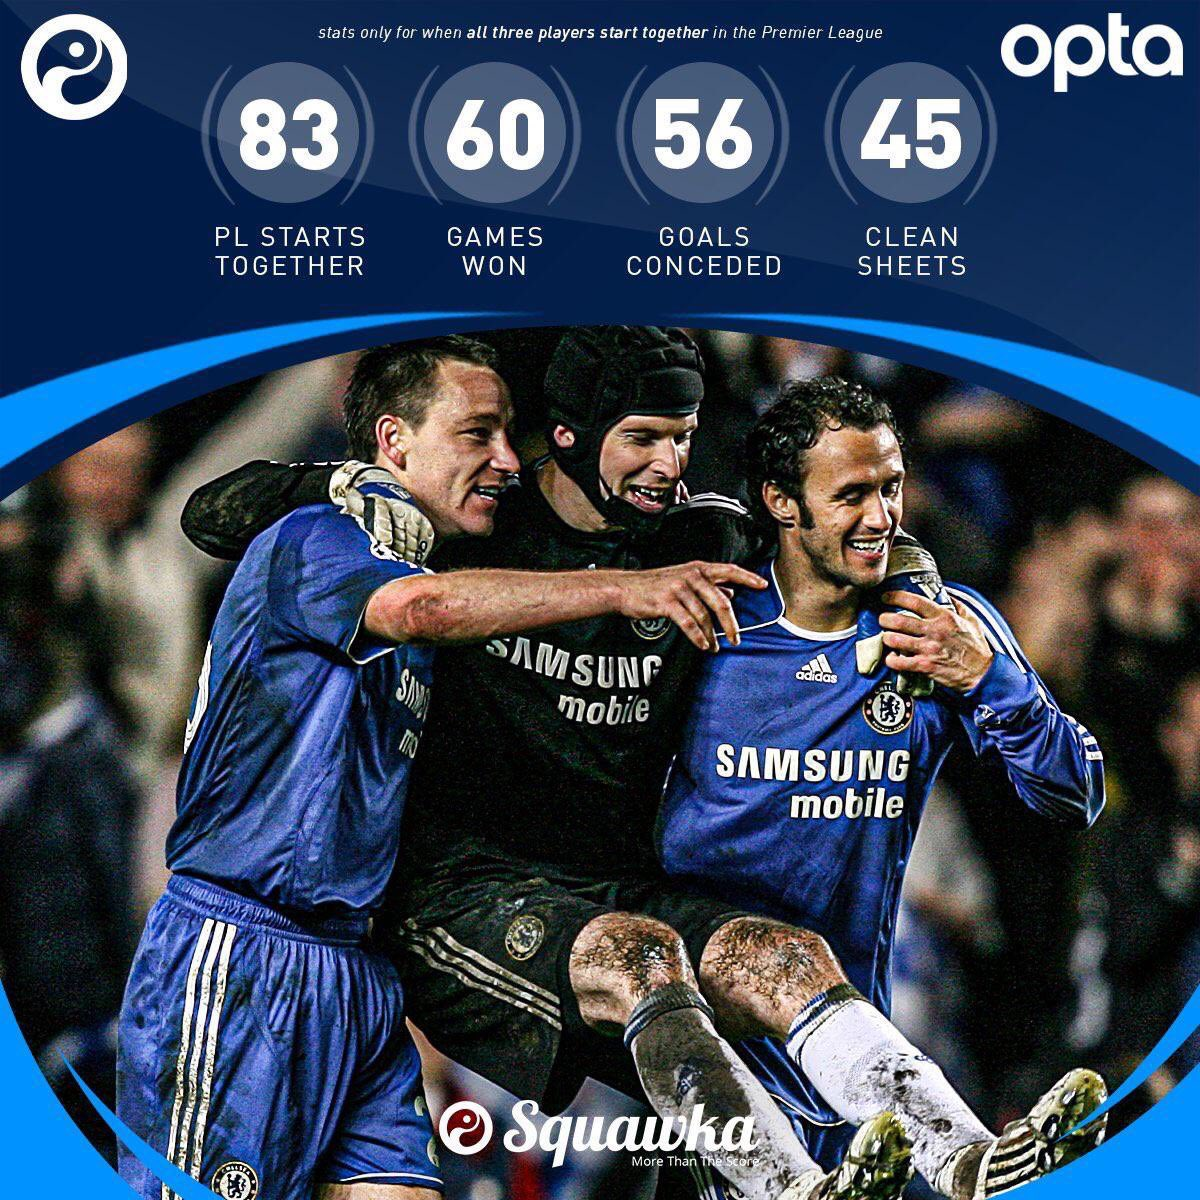 What a record @PetrCech, John Terry and Ricardo Carvalho had when they played together. 💙